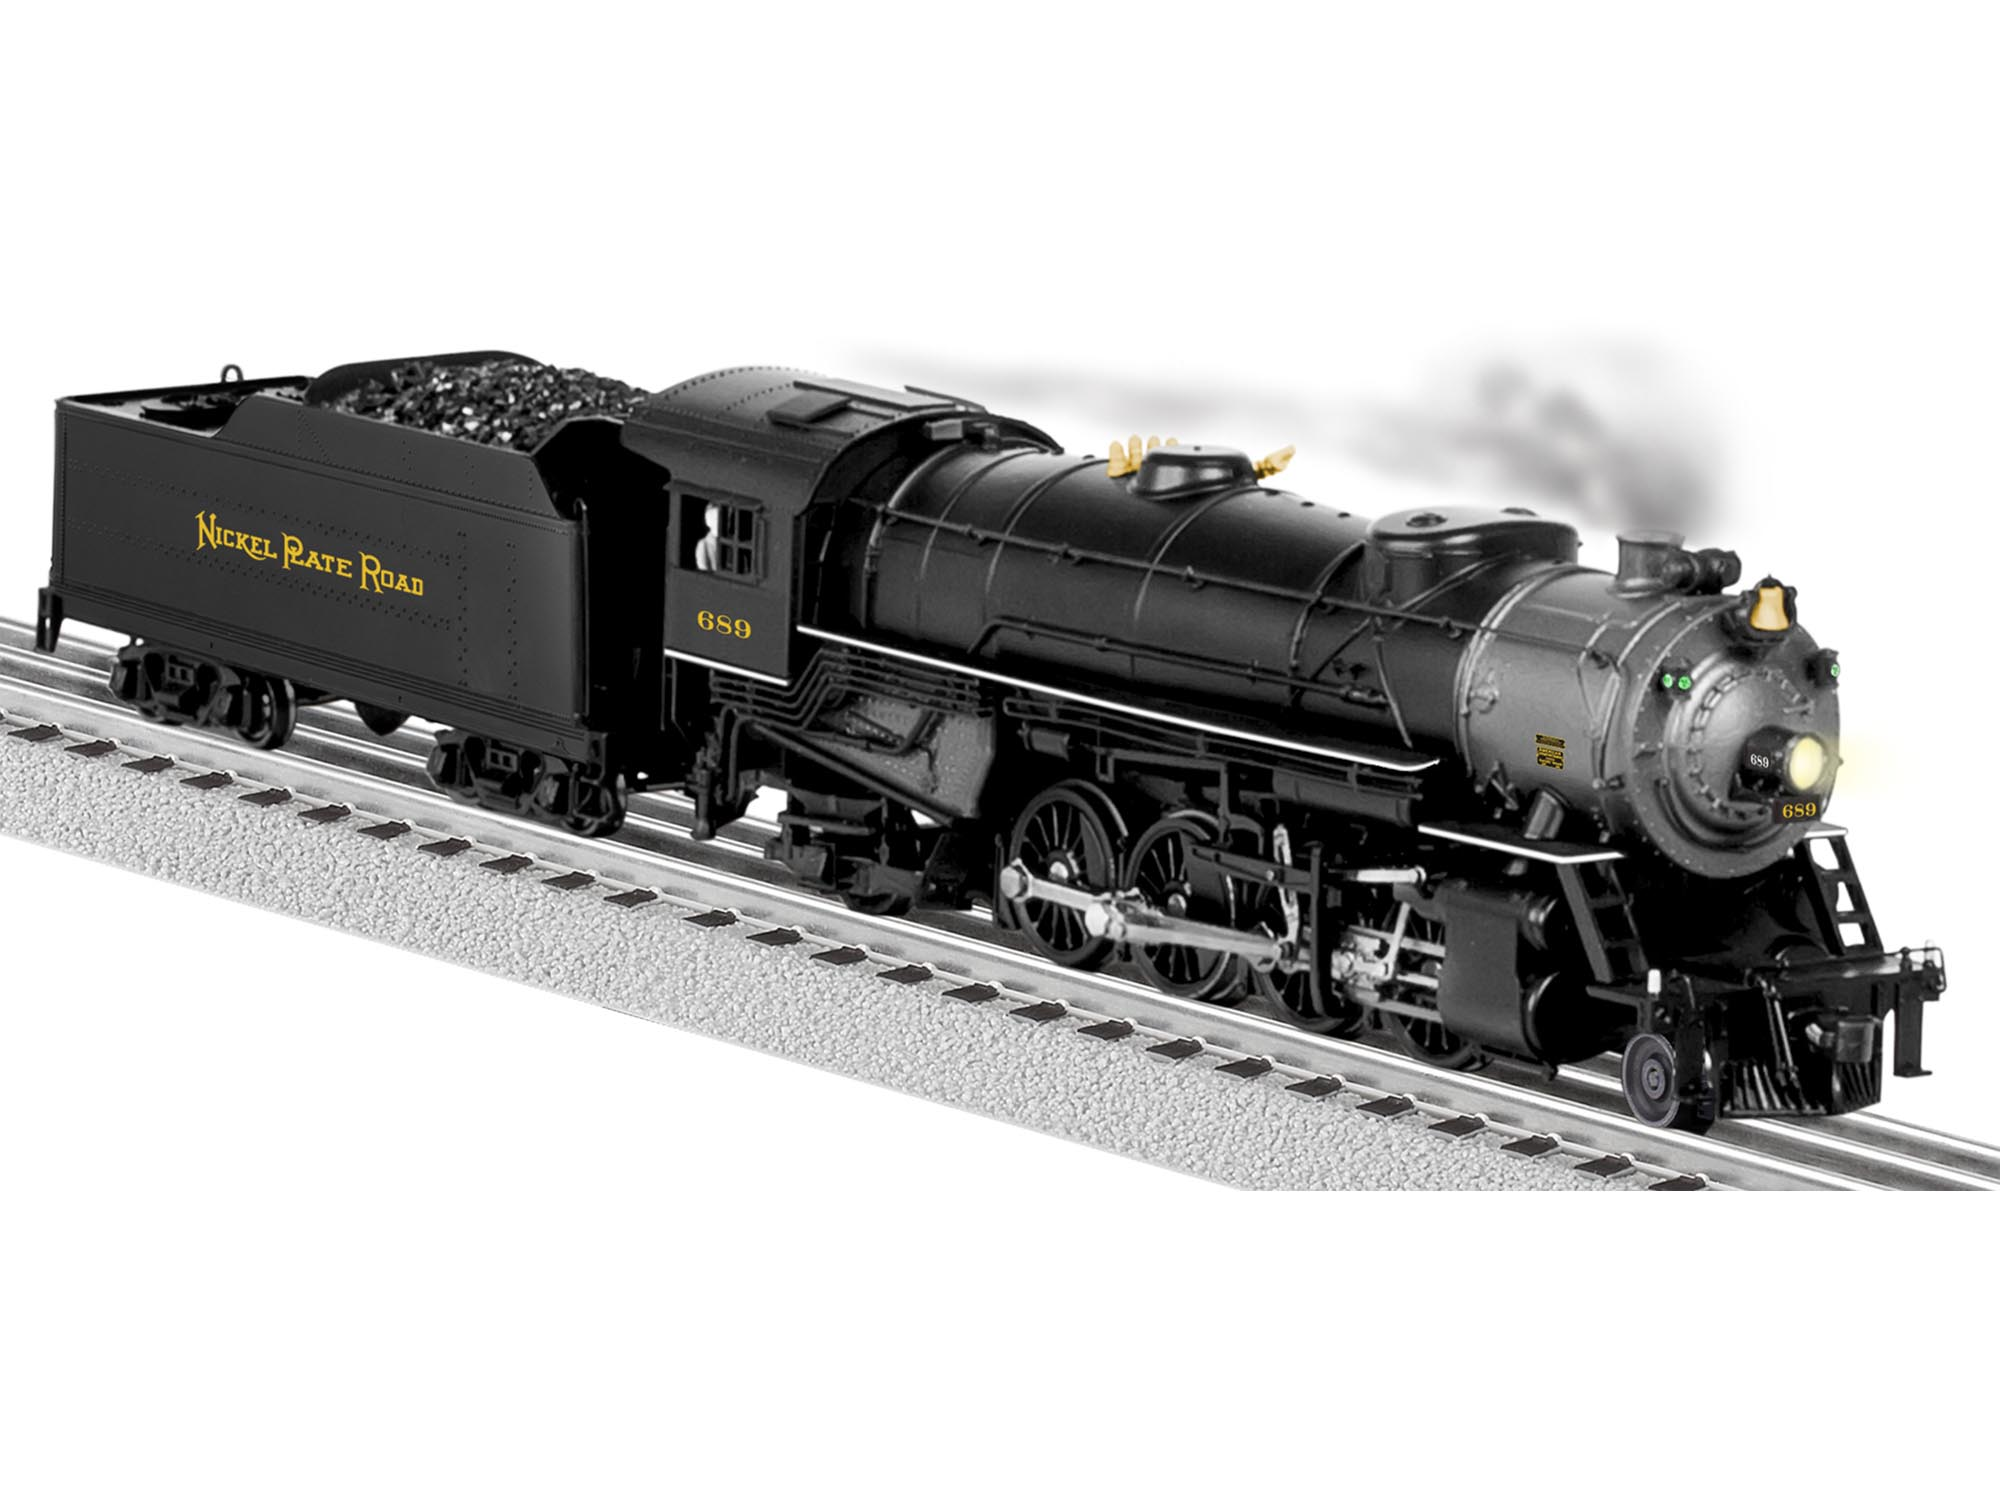 6-81194 NICKEL PLATE ROAD LEGACY MIKADO 2-8-2 STEAM LOCOMOTIVE